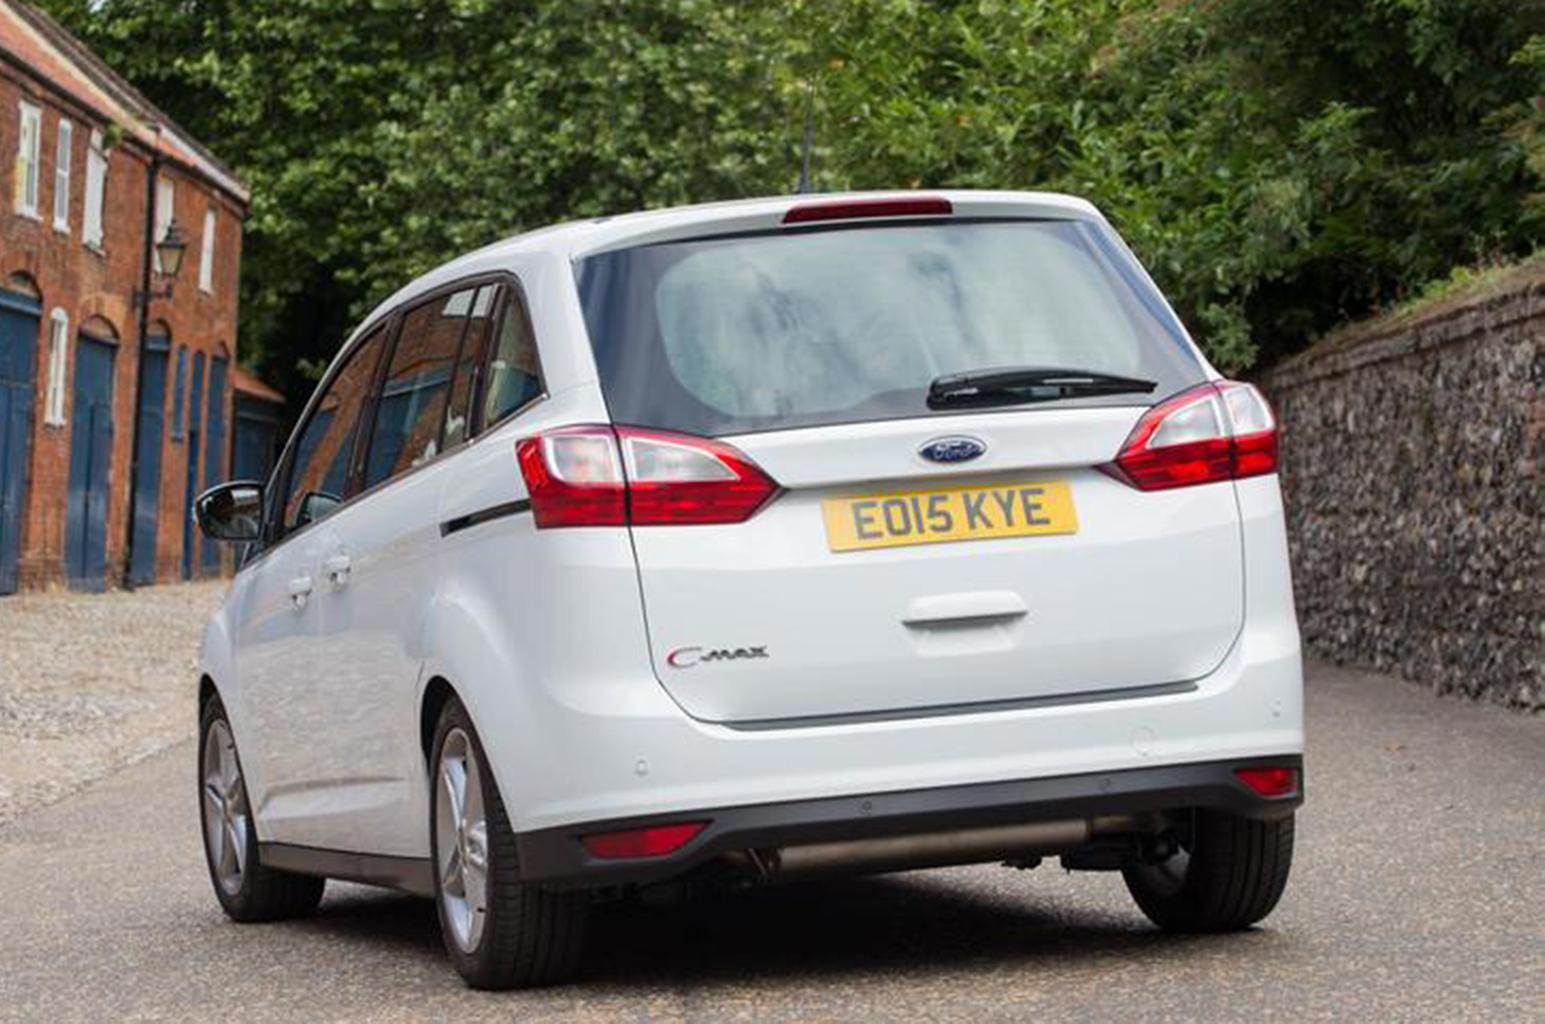 Used Ford Grand C-Max 11-present